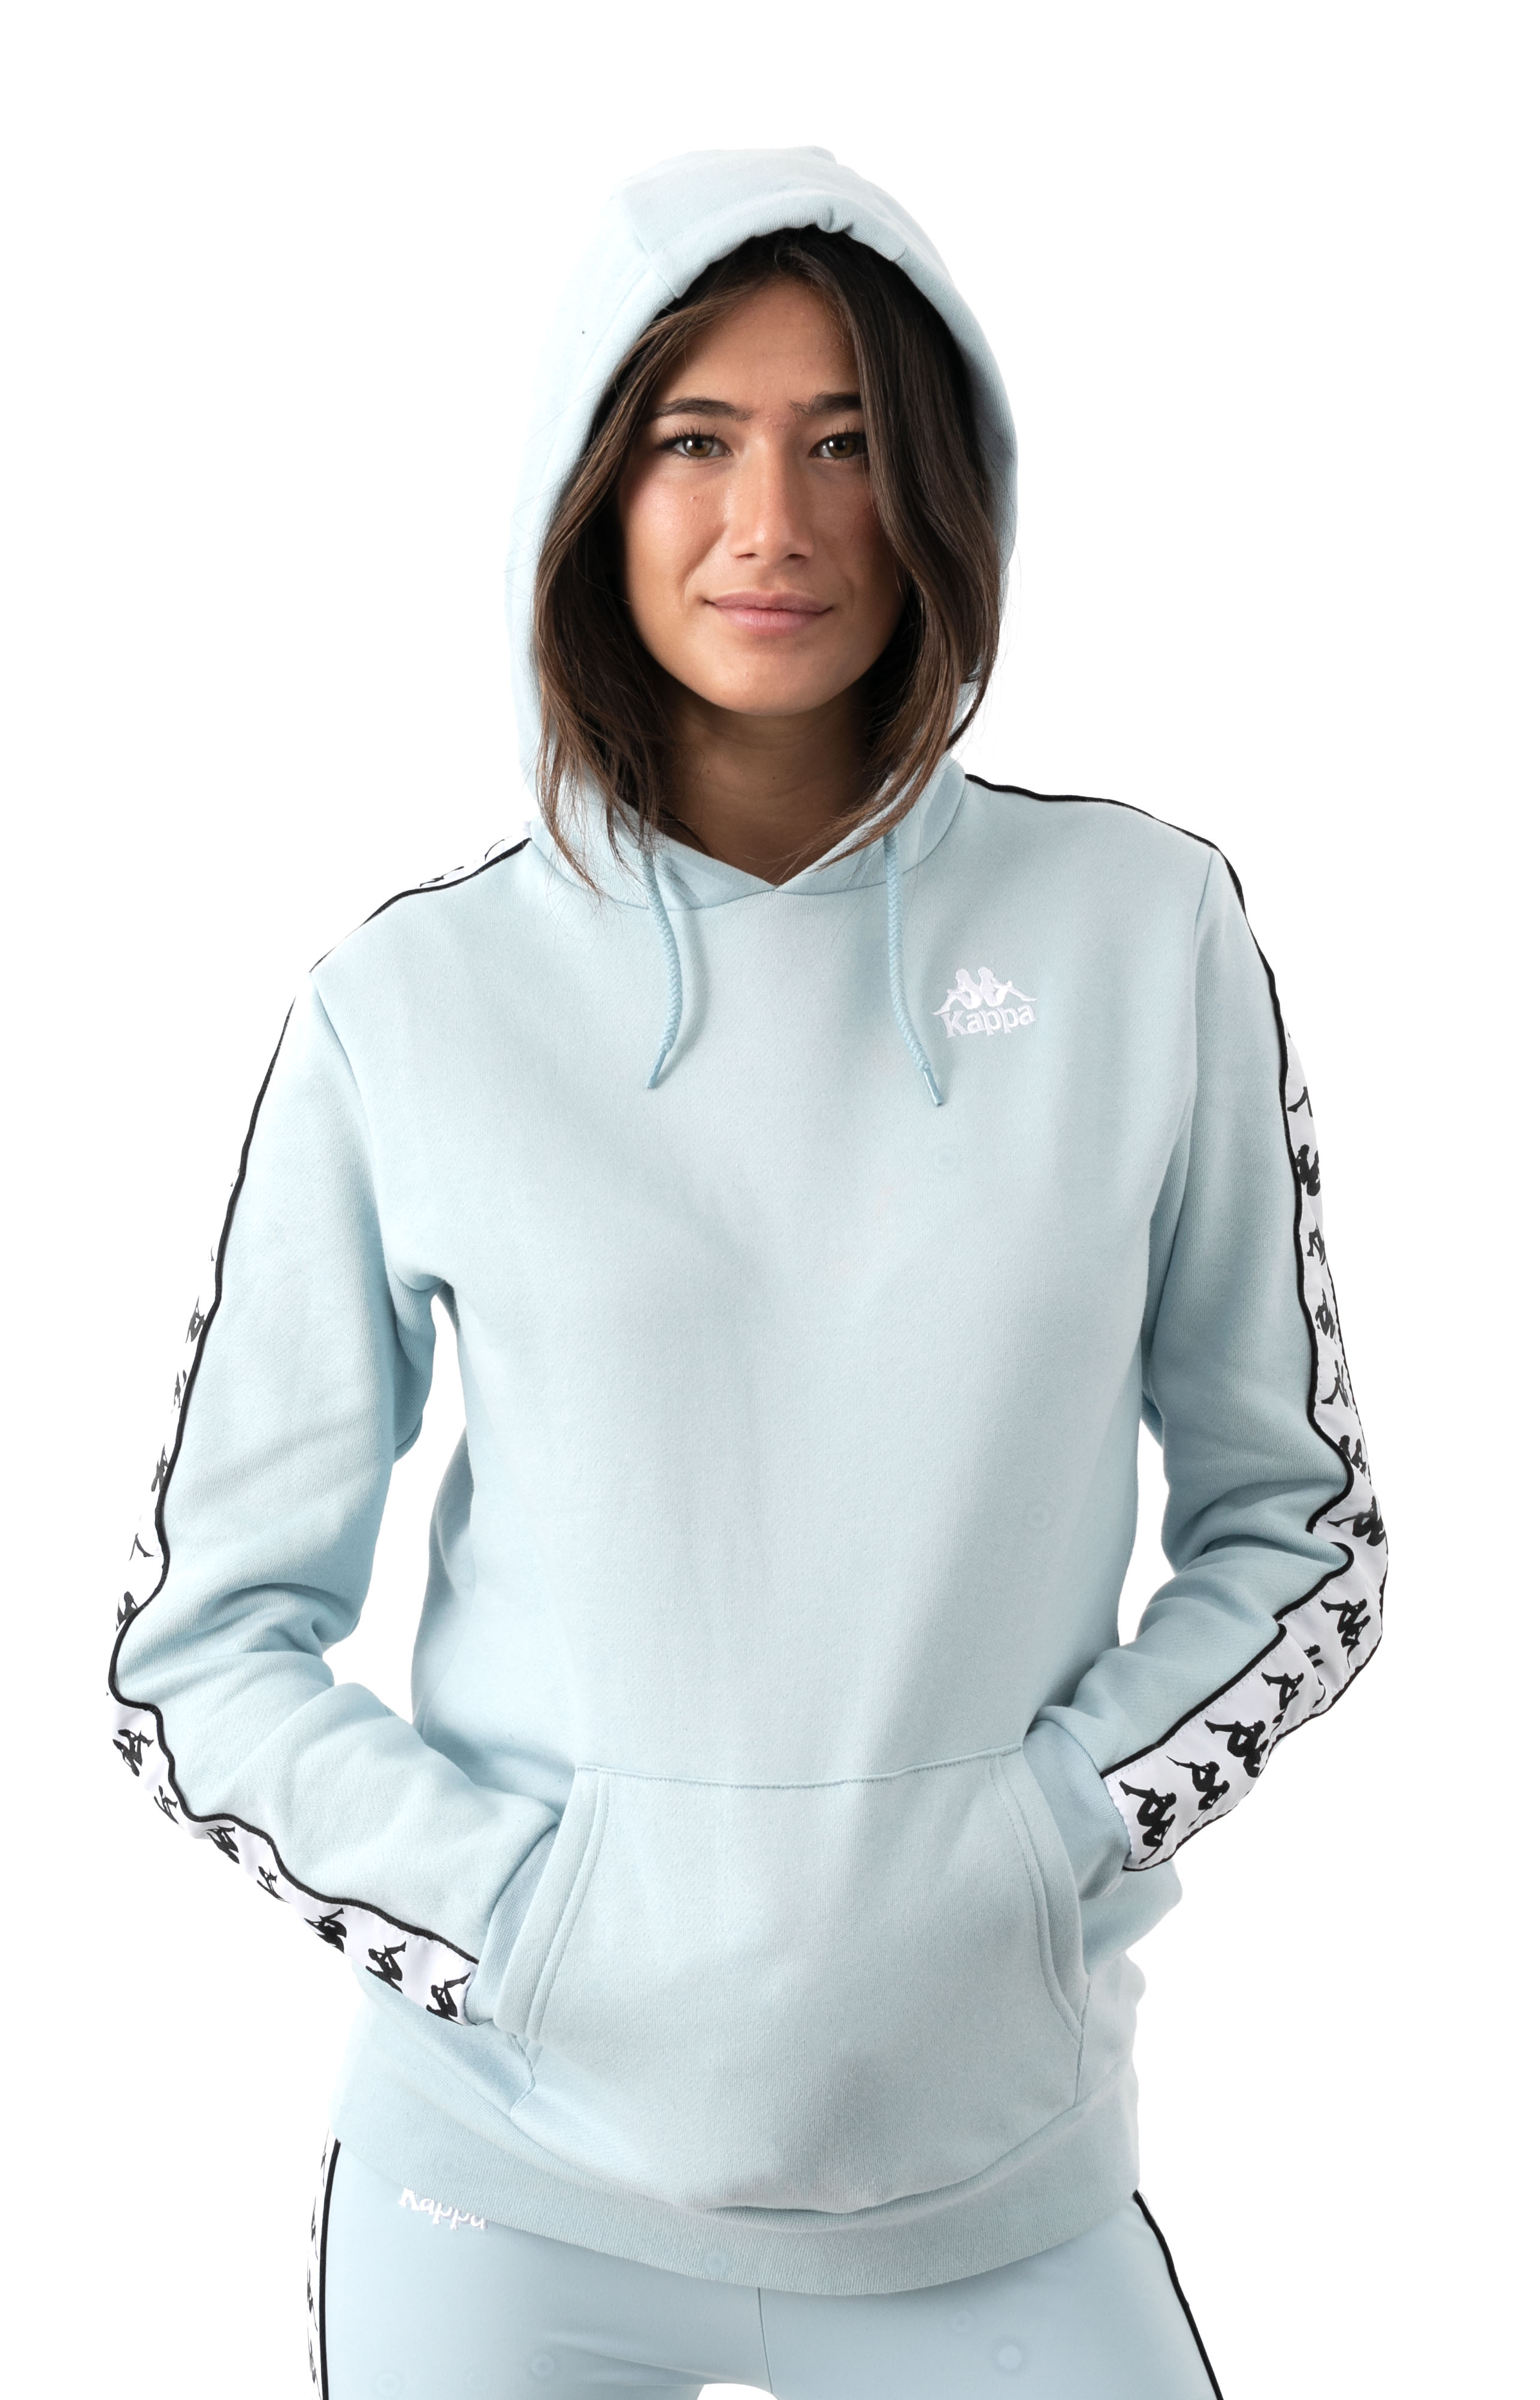 222 Banda Budy 2 Pullover Hoodie - Baby Blue/White